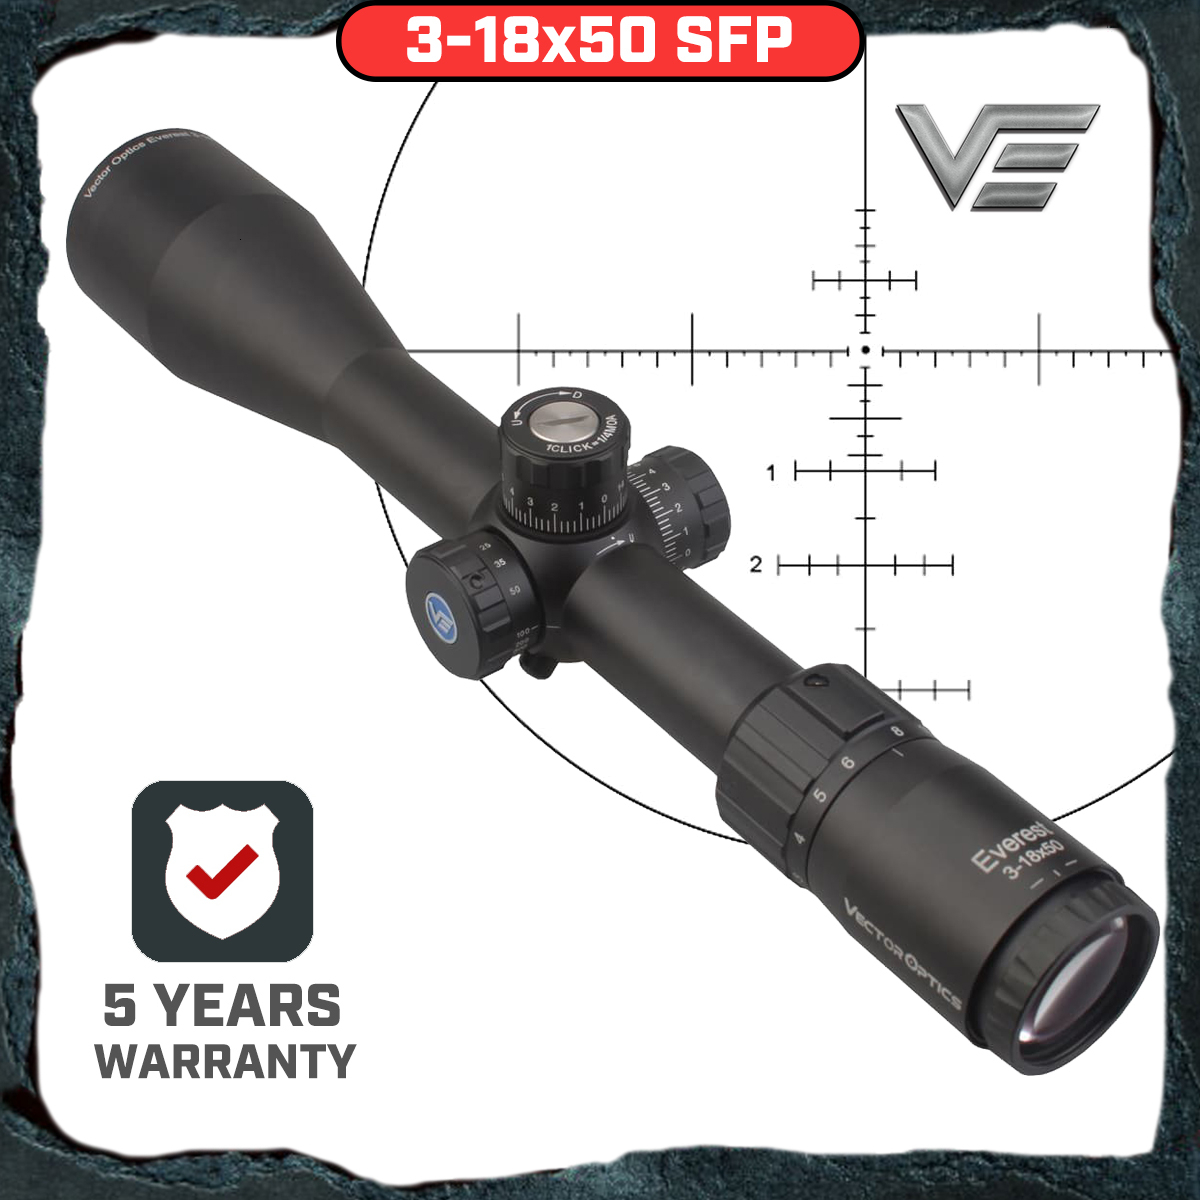 Vector Optics GenII Everest 3-18x50 AR15 Scope Air Gun Riflescope Hunting Tactical MOA With Honeycomb Mark Ring .223 .308 5.56